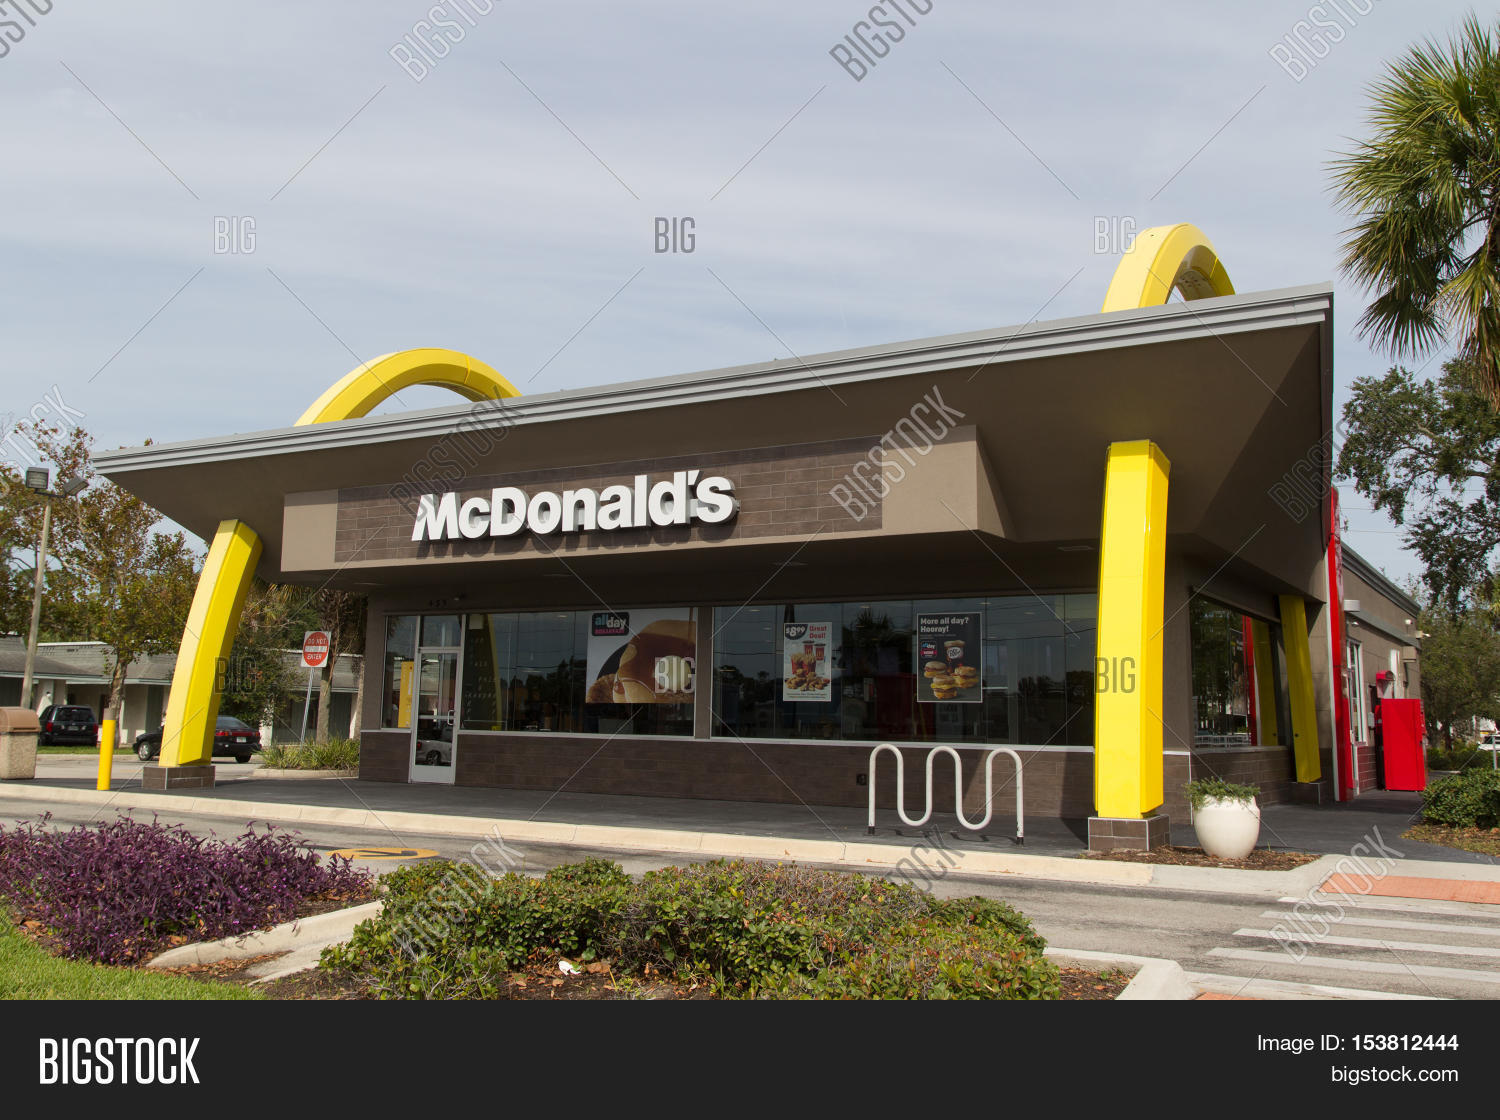 Largest fast food chain restaurant in the world food ideas for Fast food restaurants open on easter